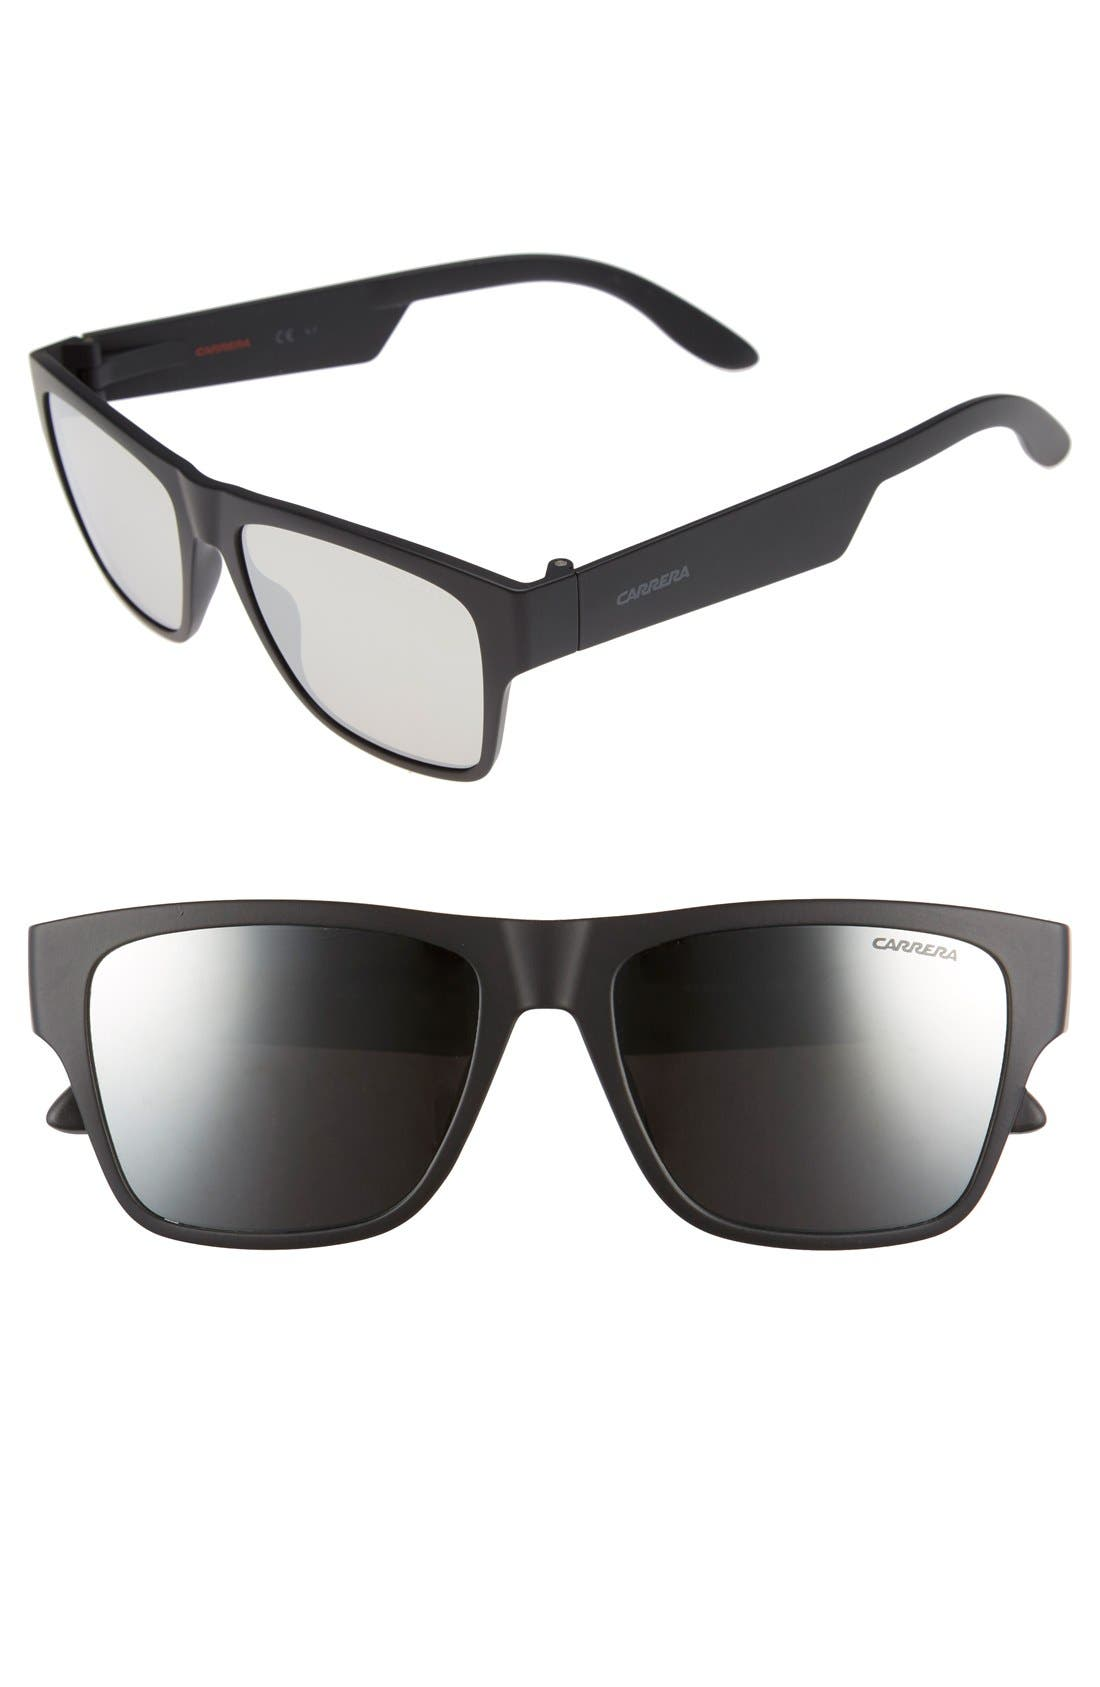 Carrera Eyewear 55mm Retro Sunglasses